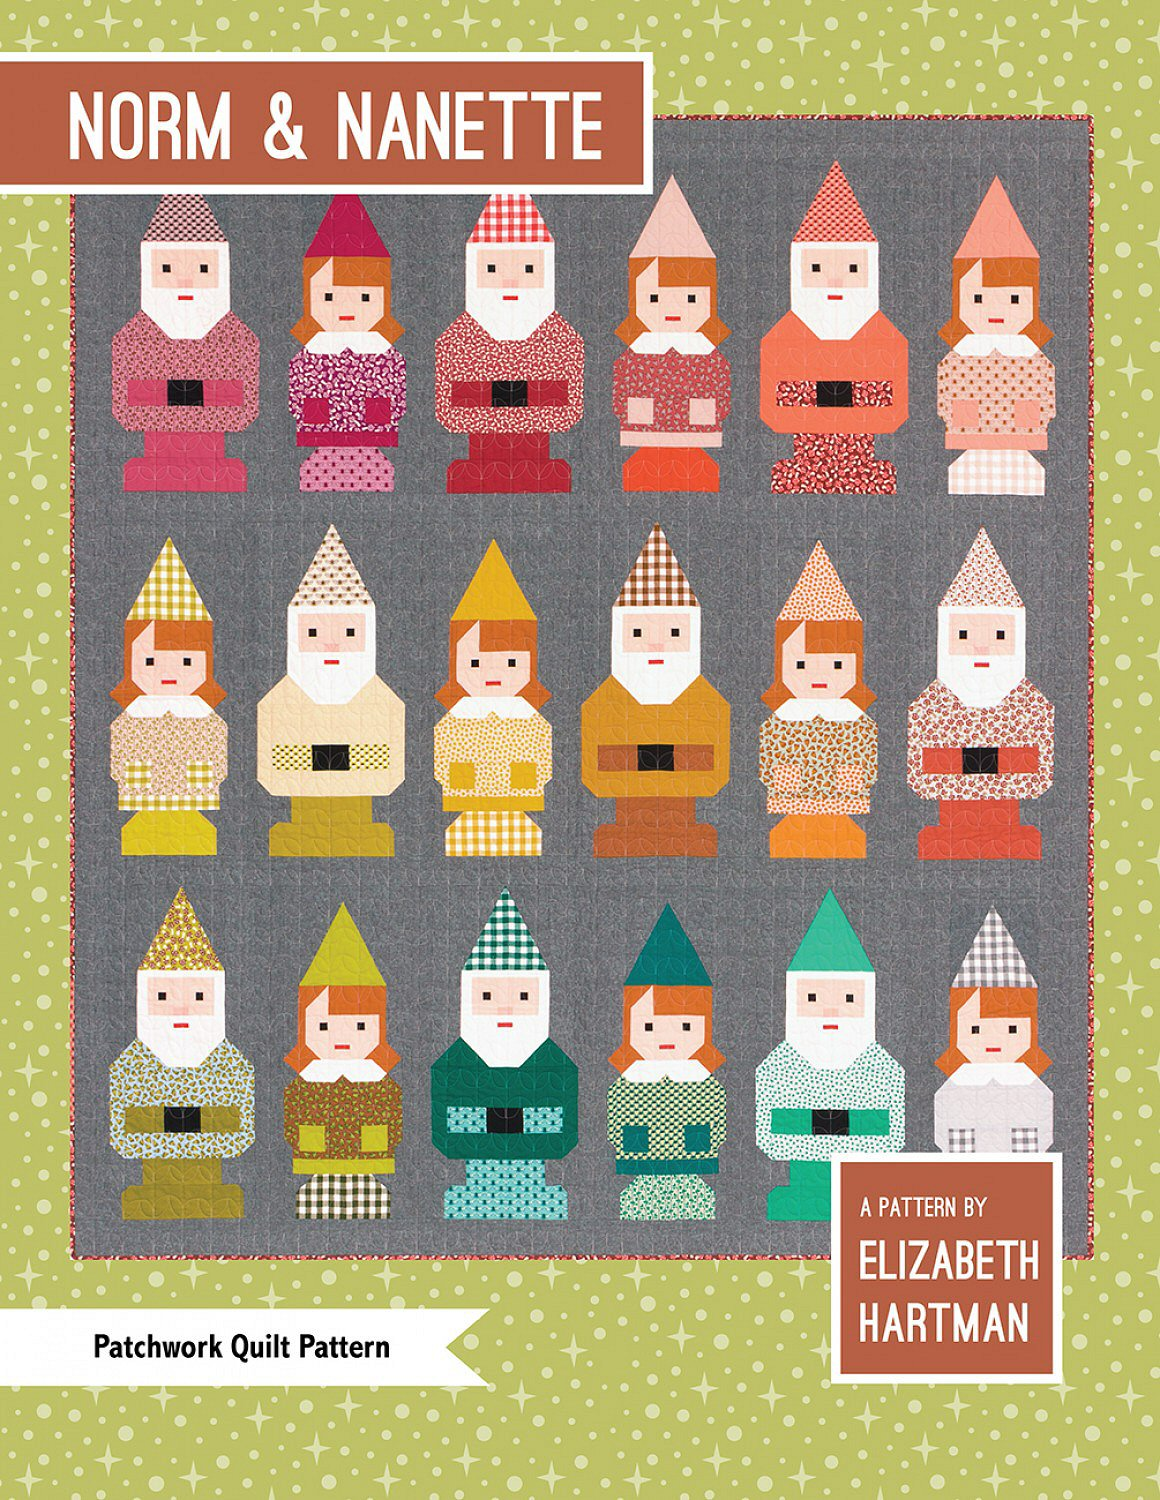 Norm_Nanette_GnomesQuiltSewingPattern_EH046